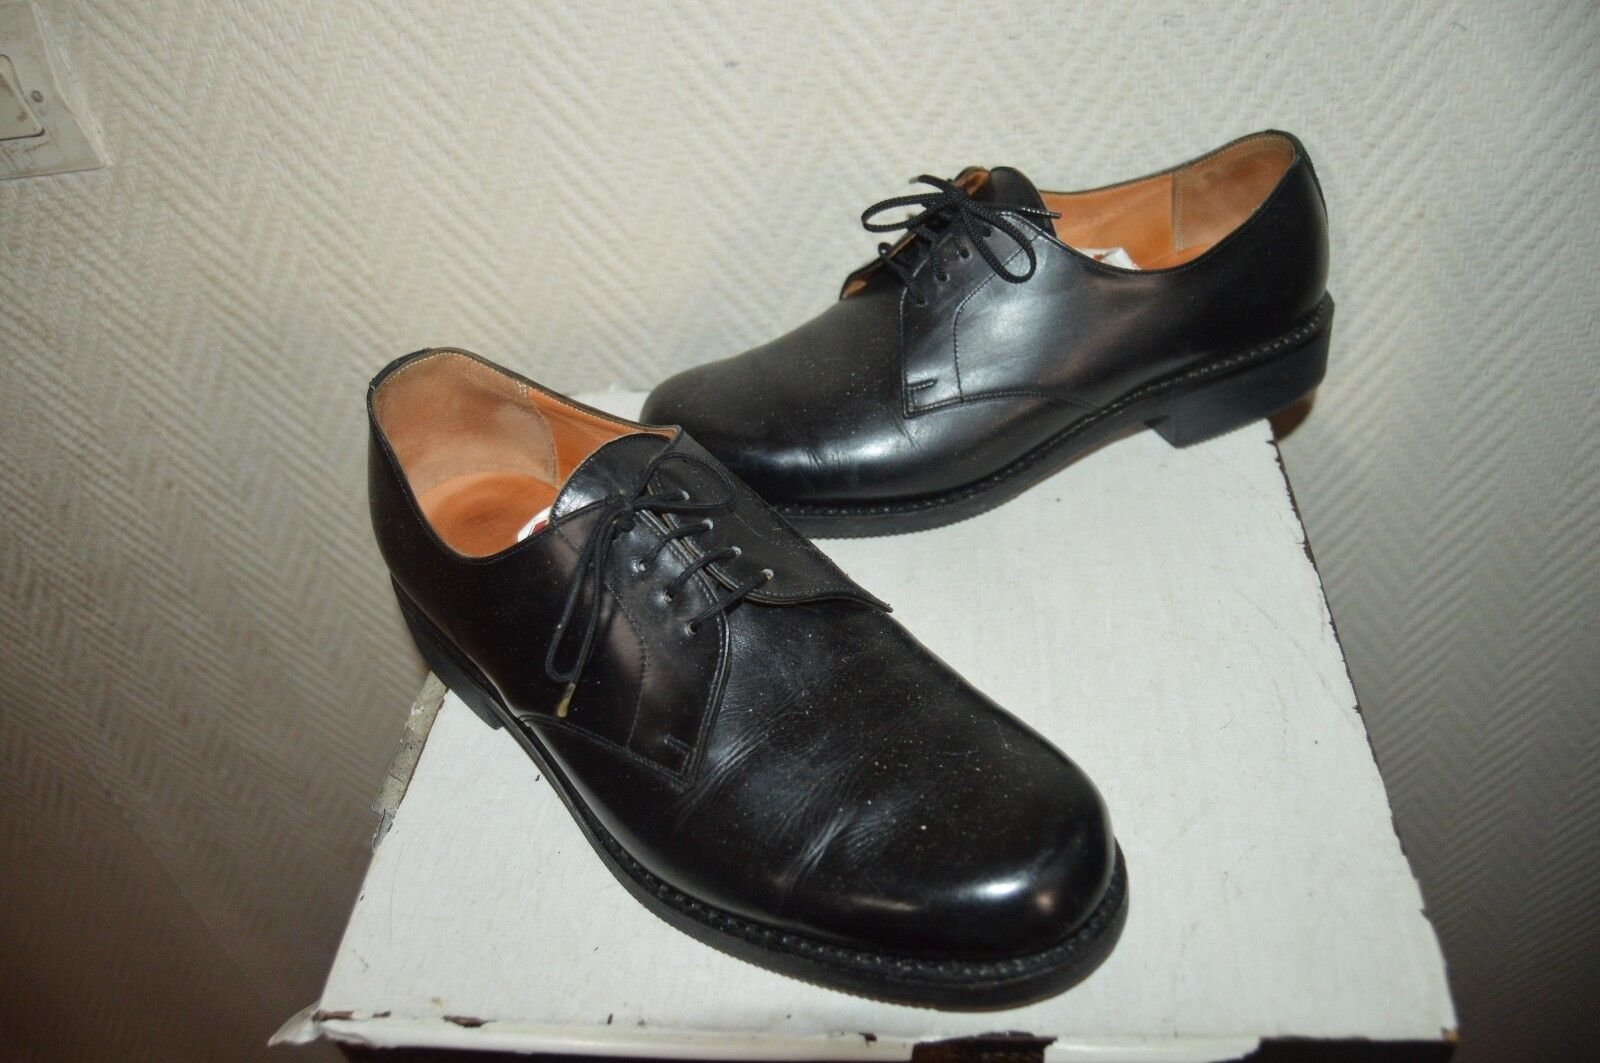 CHAUSSURE BATA MOUSSEY size 41  6 SHOES shoes STIVALI CUIR ARMEE POLICE MODE